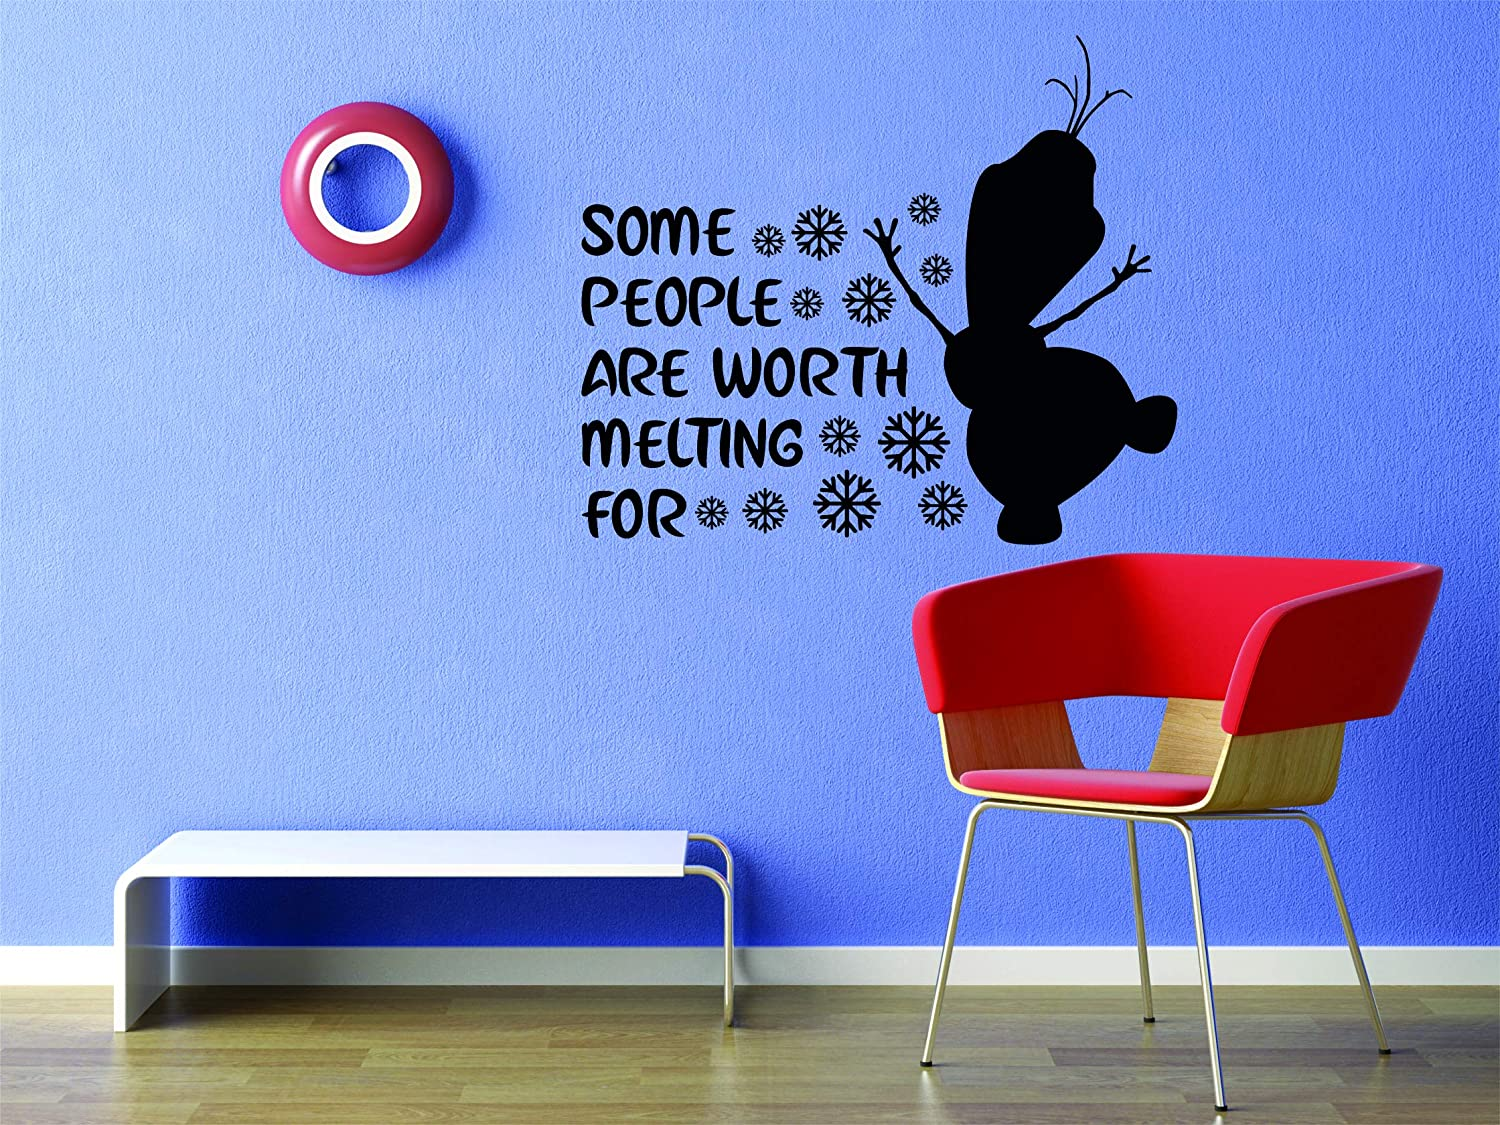 Details about  /Olaf Worth Melting For Frozen Show Vinyl Art Stickers For Home Room Walls Decals